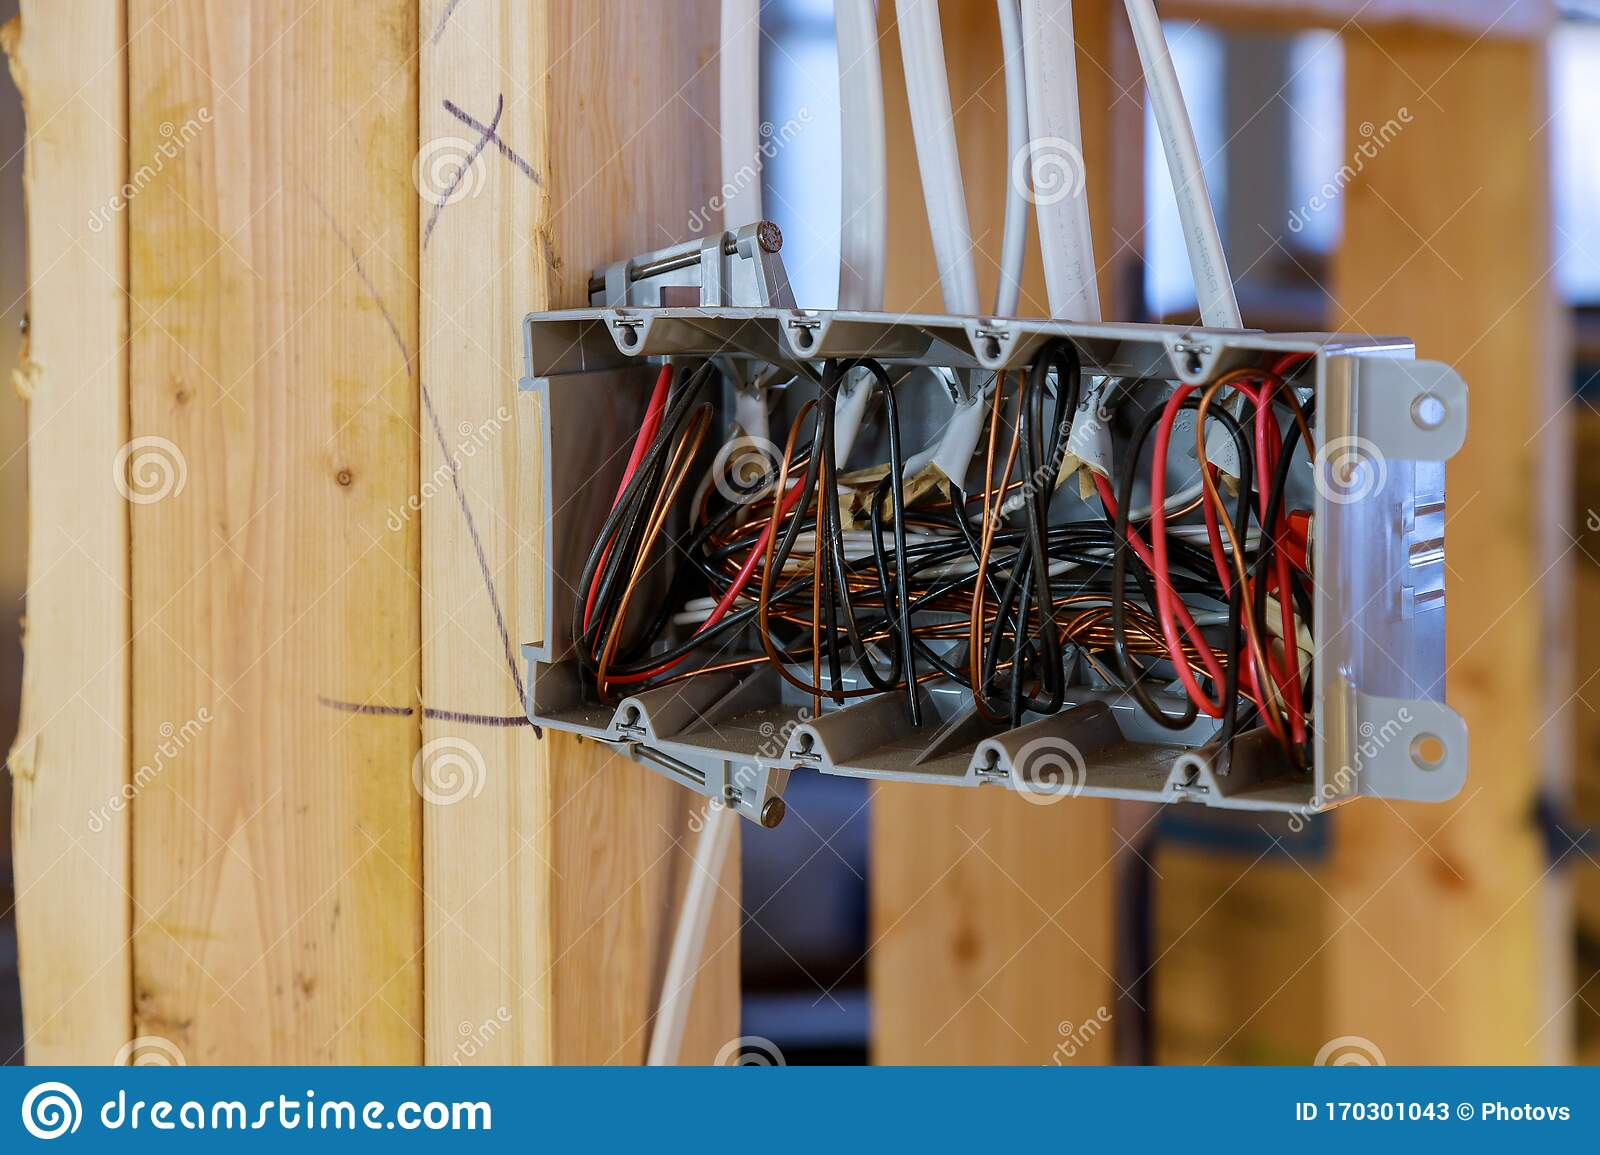 Interior View Of A Electrical Box With Wiring In A New Home Under Construction Wooden Beams Stock Image Image Of Frame House 170301043